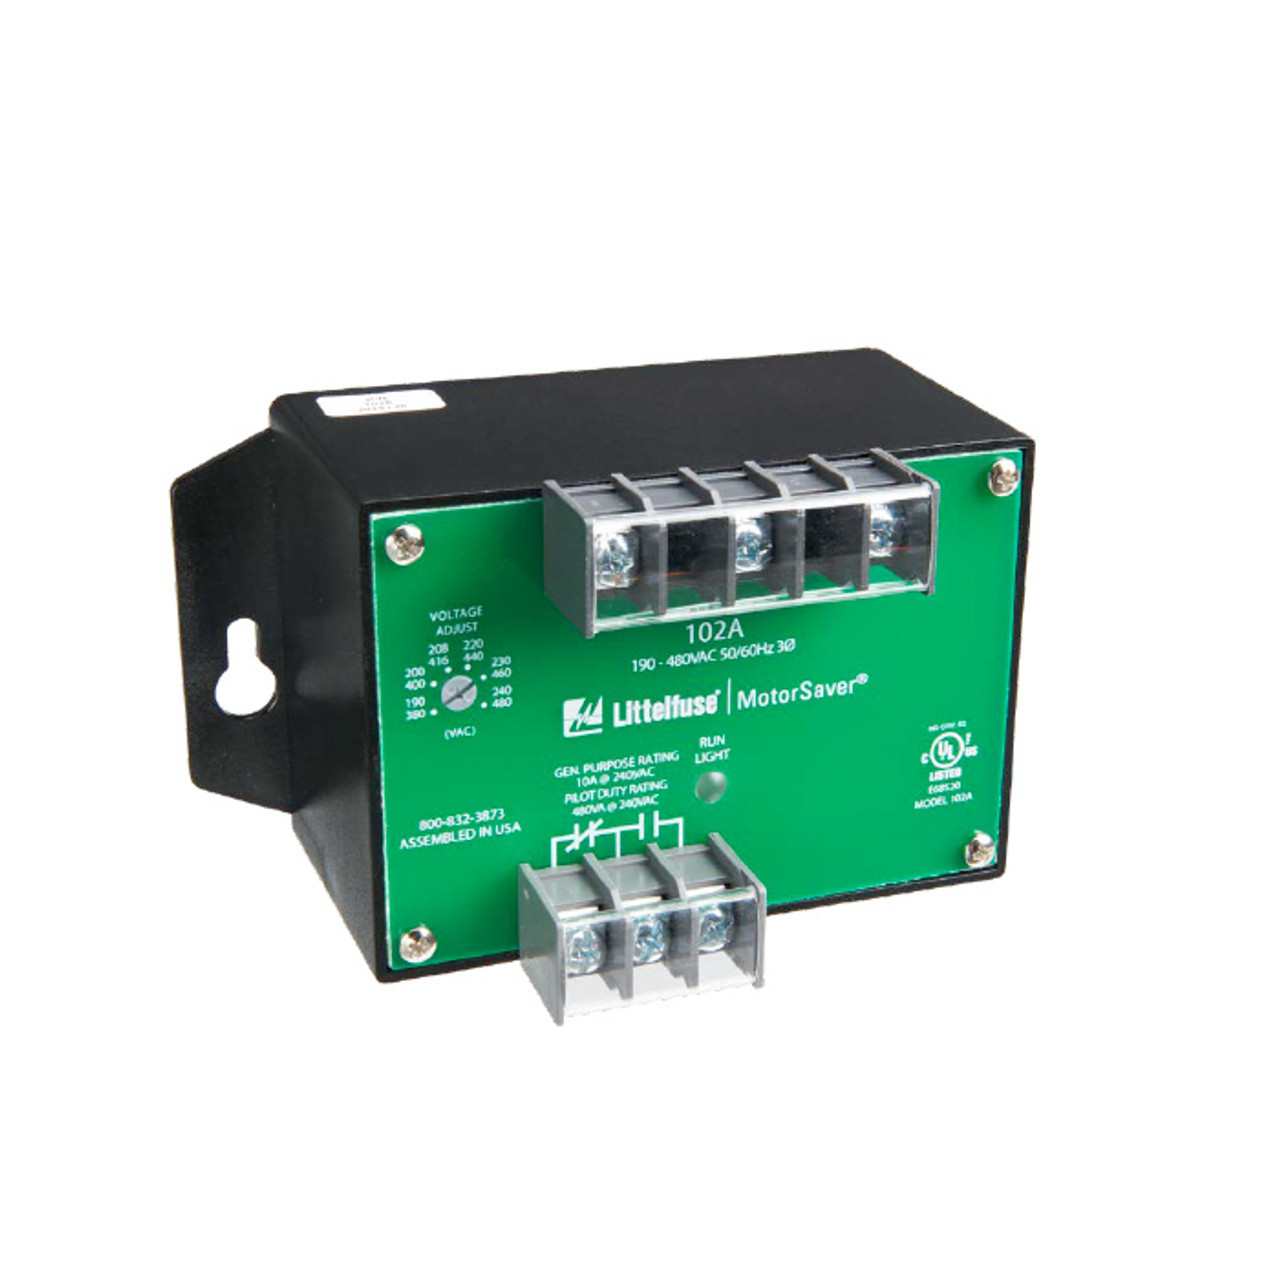 102A Series 3-PHASE VOLTAGE MONITOR